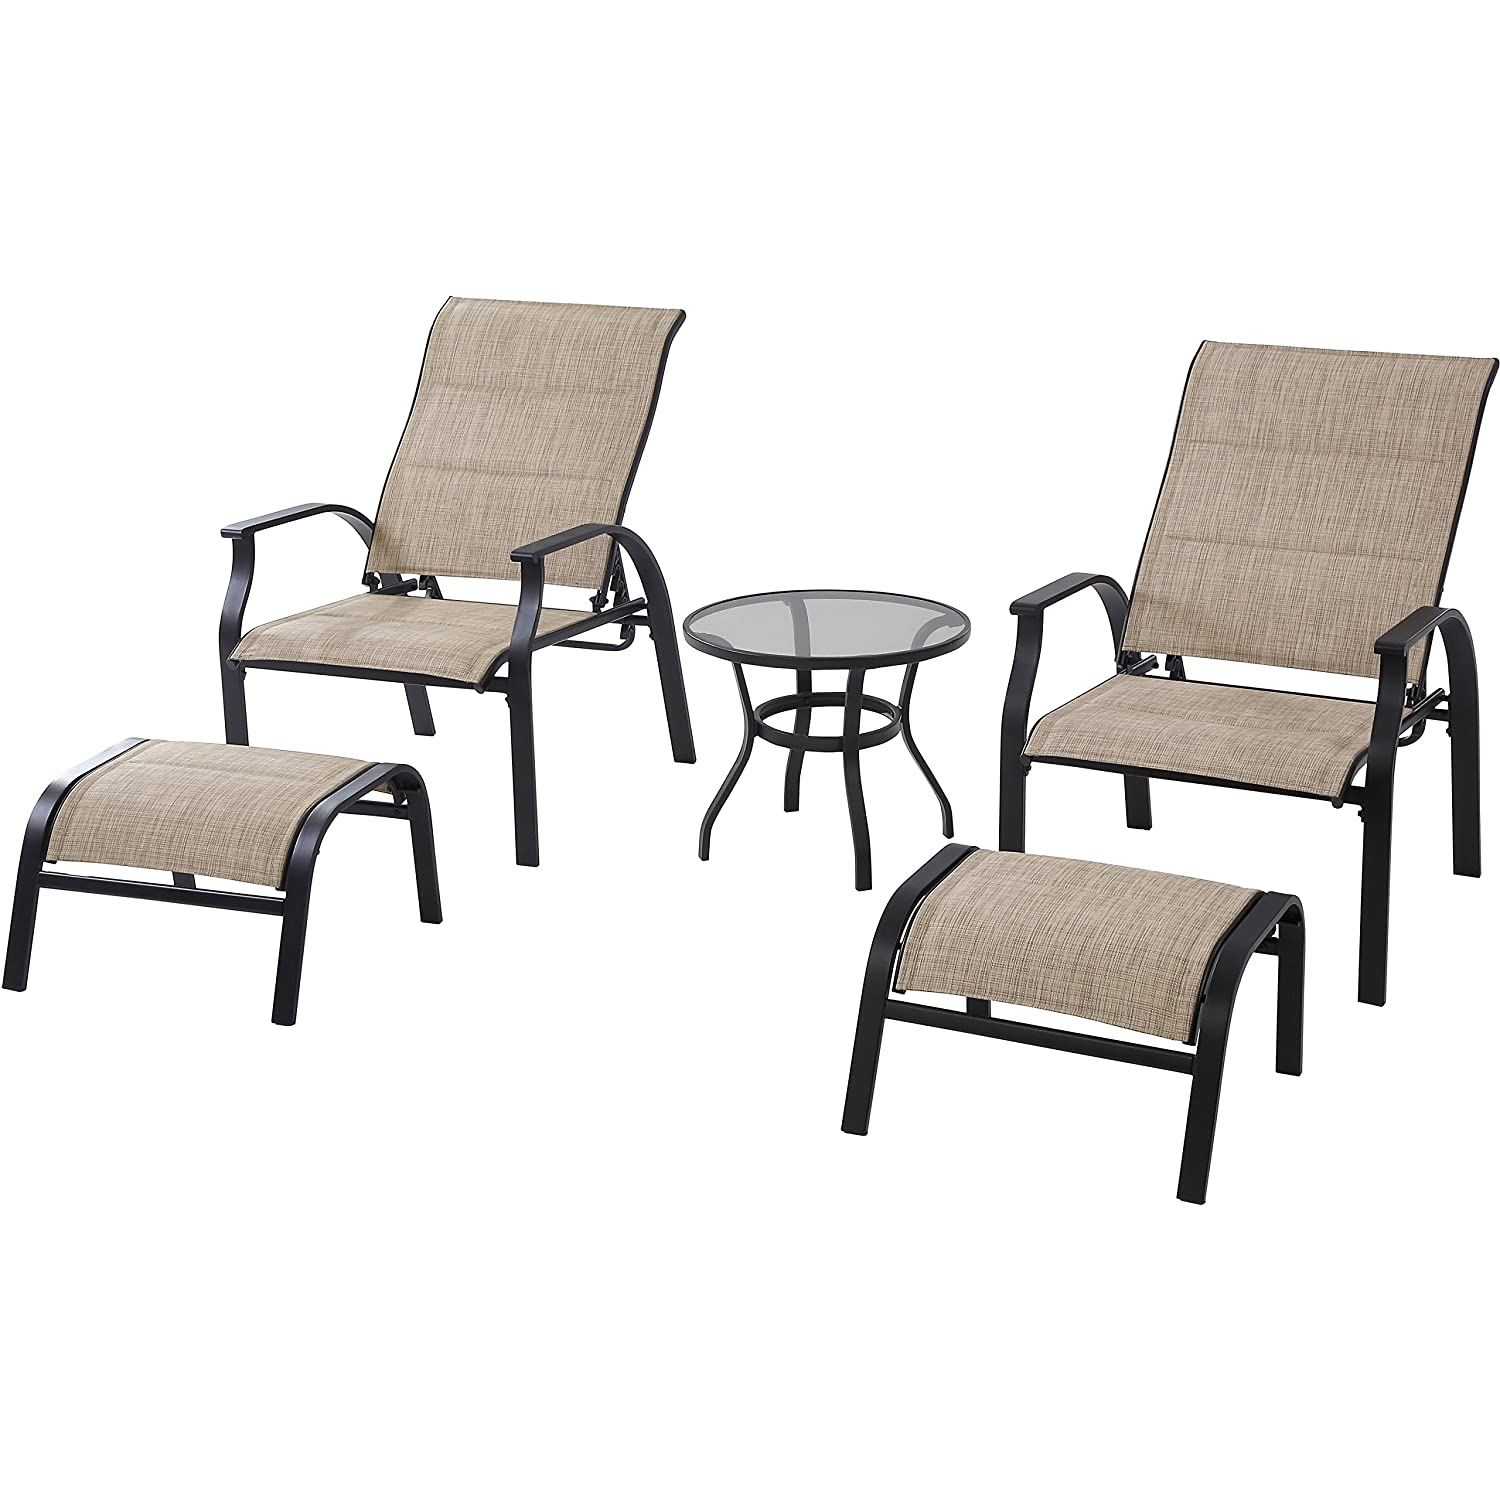 Highland Knolls Padded Sling 5-Piece Leisure Set